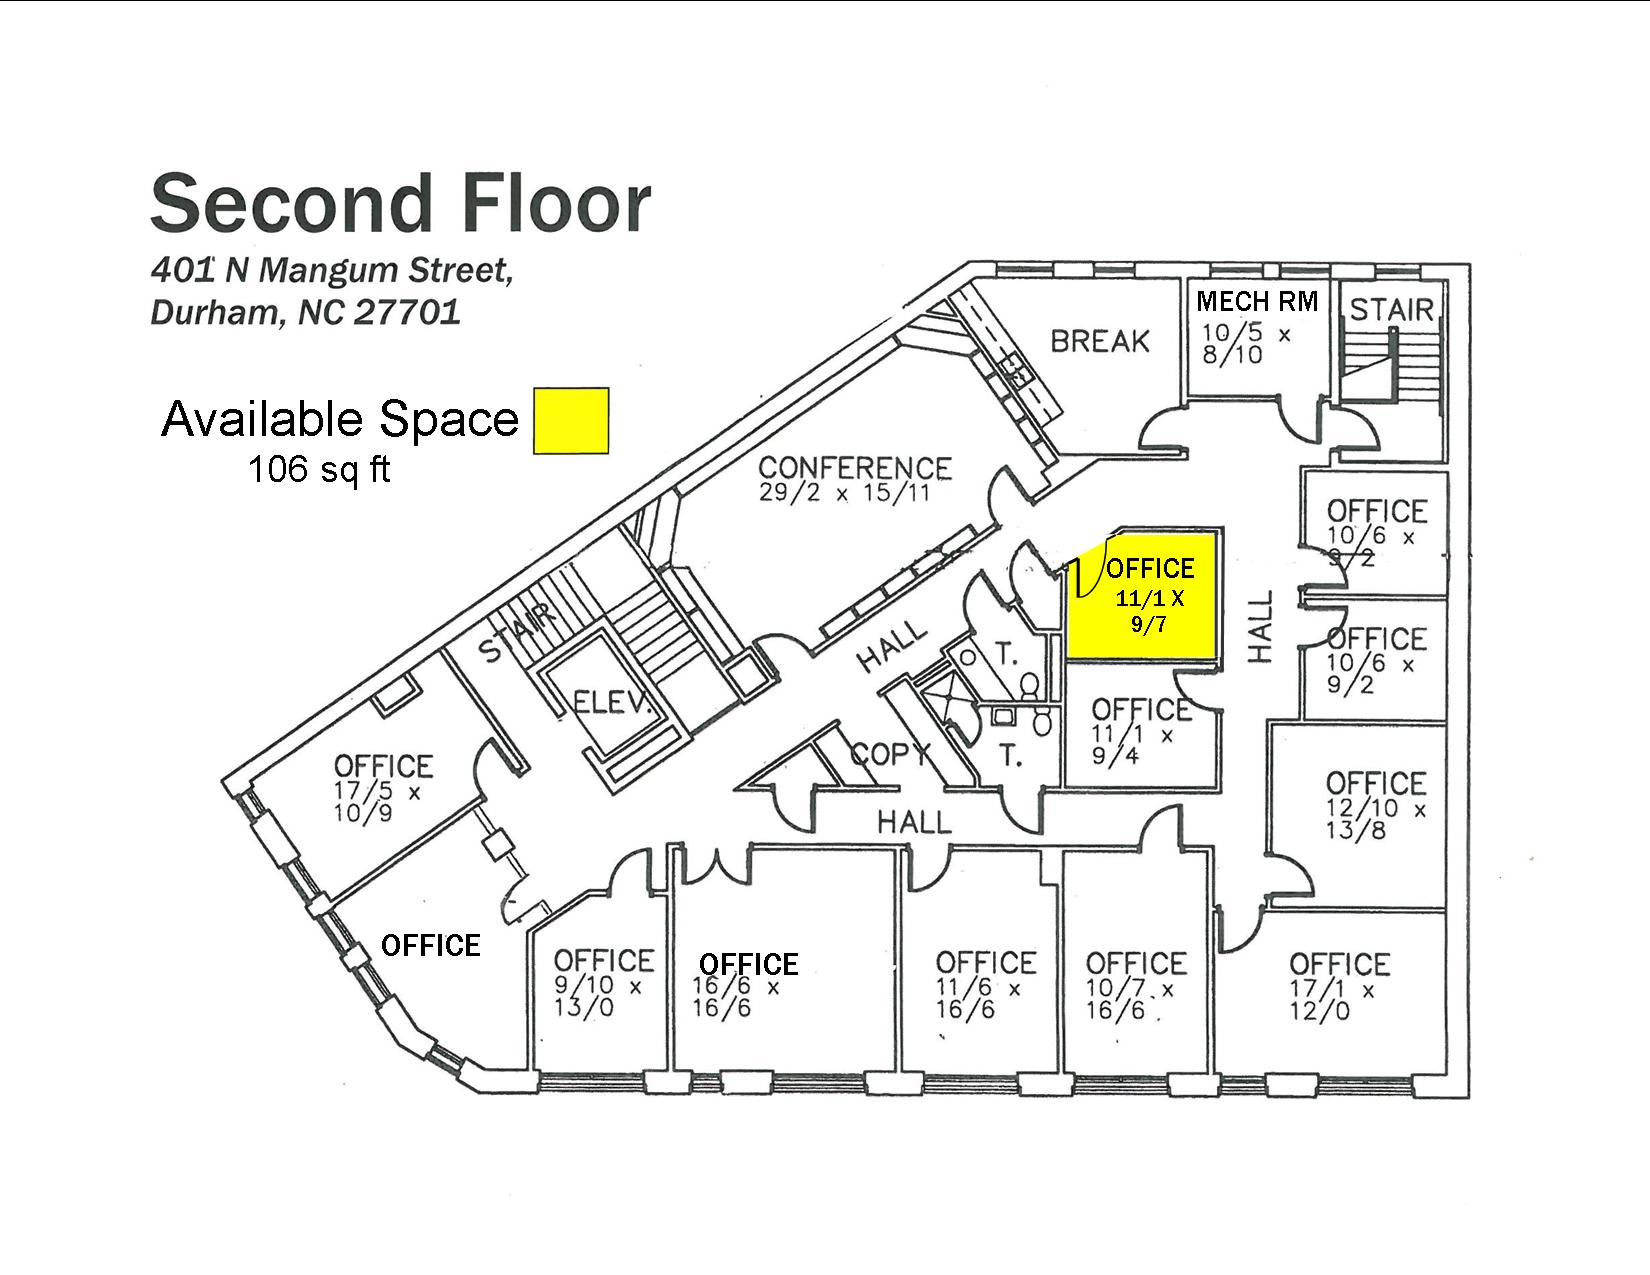 Floor 2 – Available Space – 106 sq ft